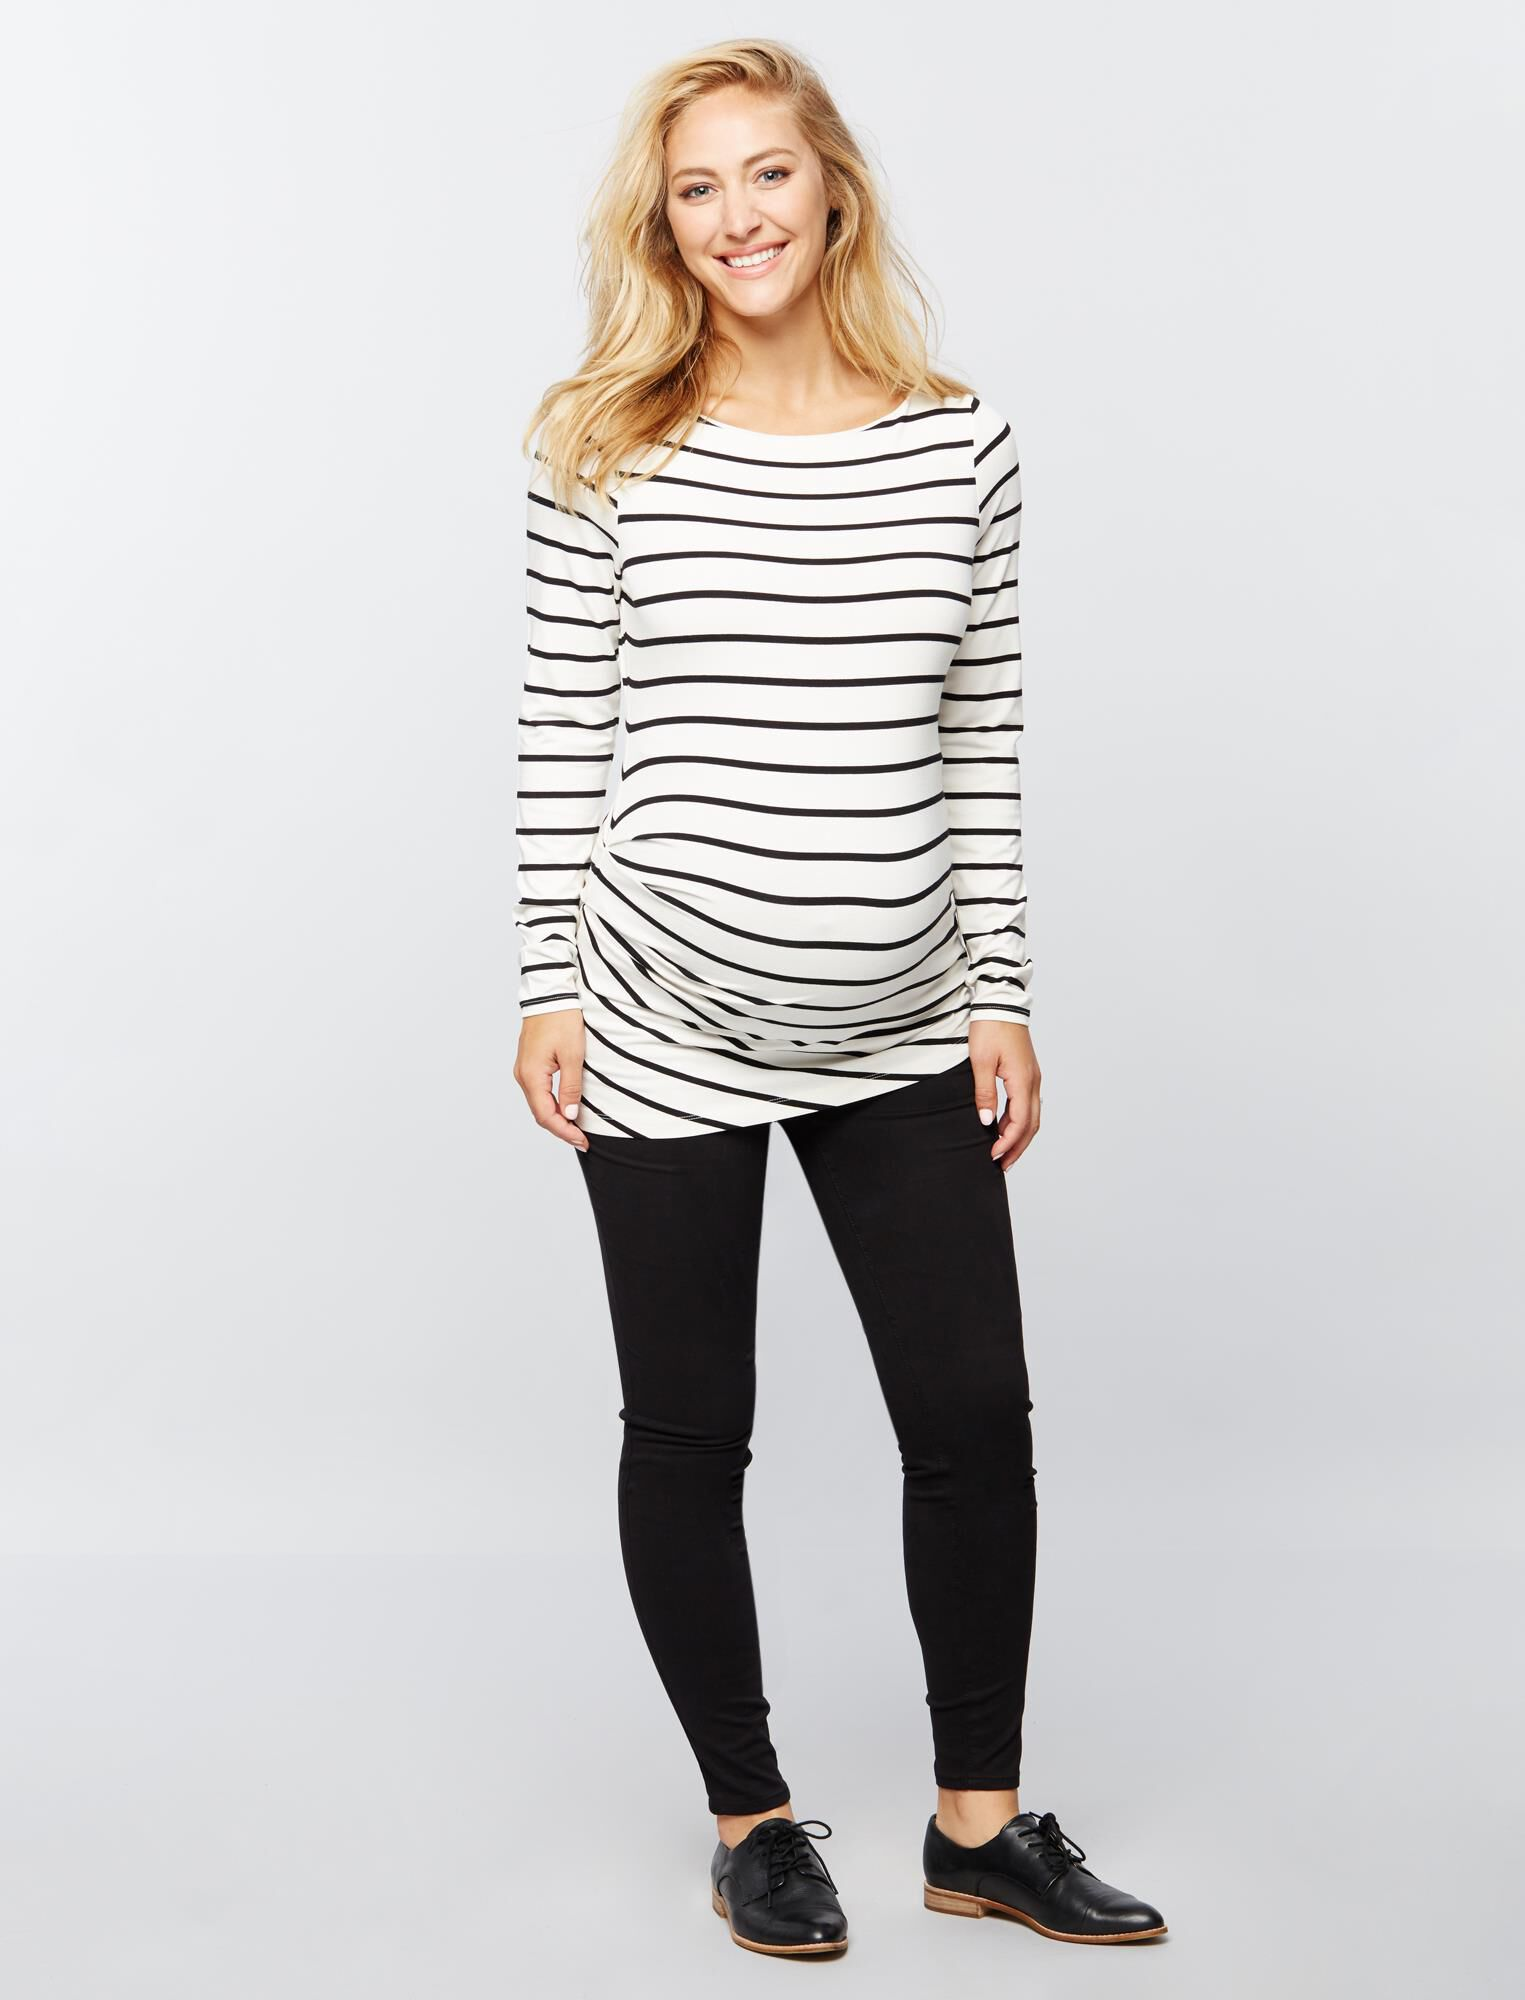 Pleated Maternity Top- Stripe